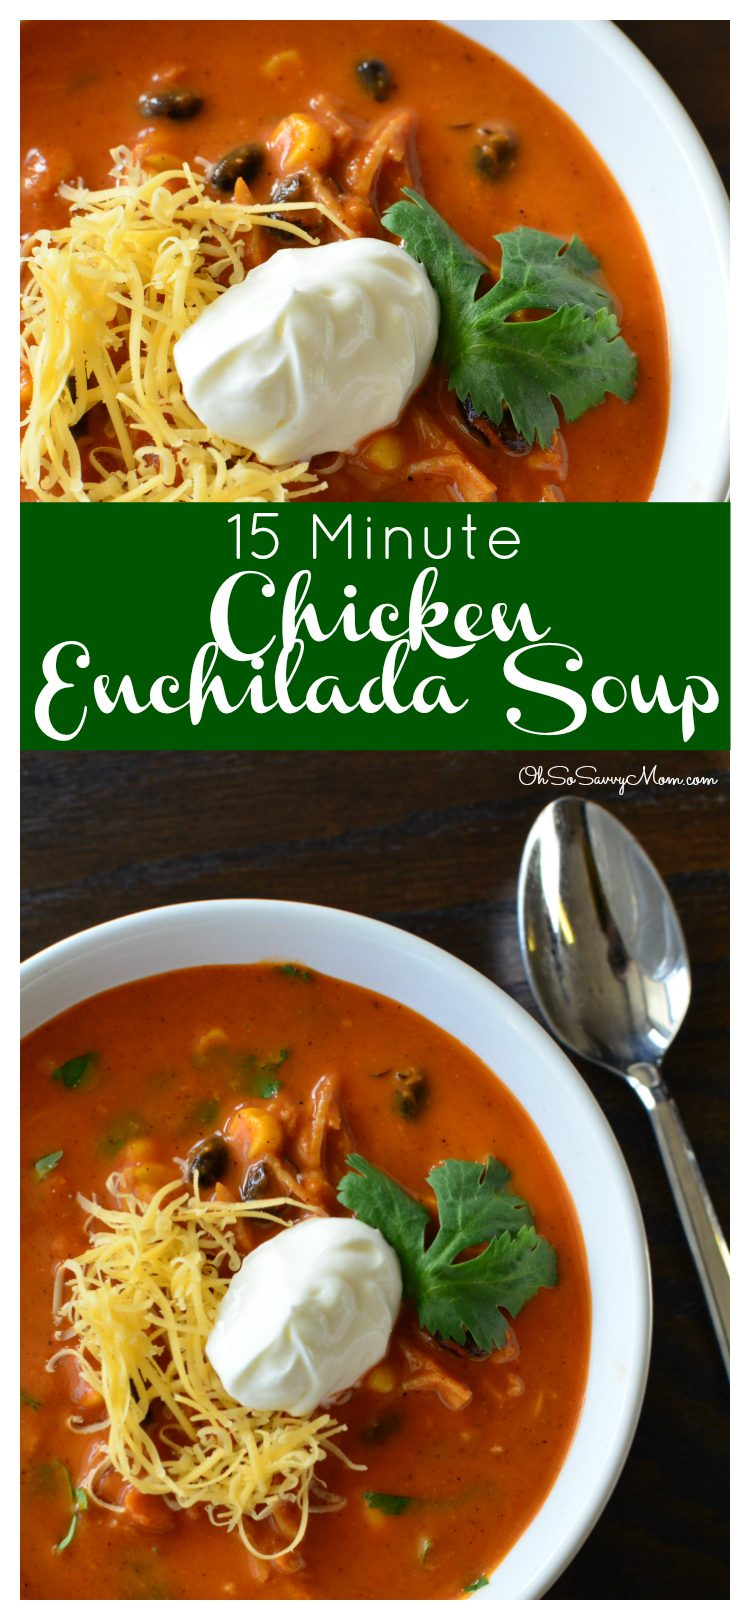 15 Minute Chicken Enchilada Soup, Easy Weeknight Dinner Recipe